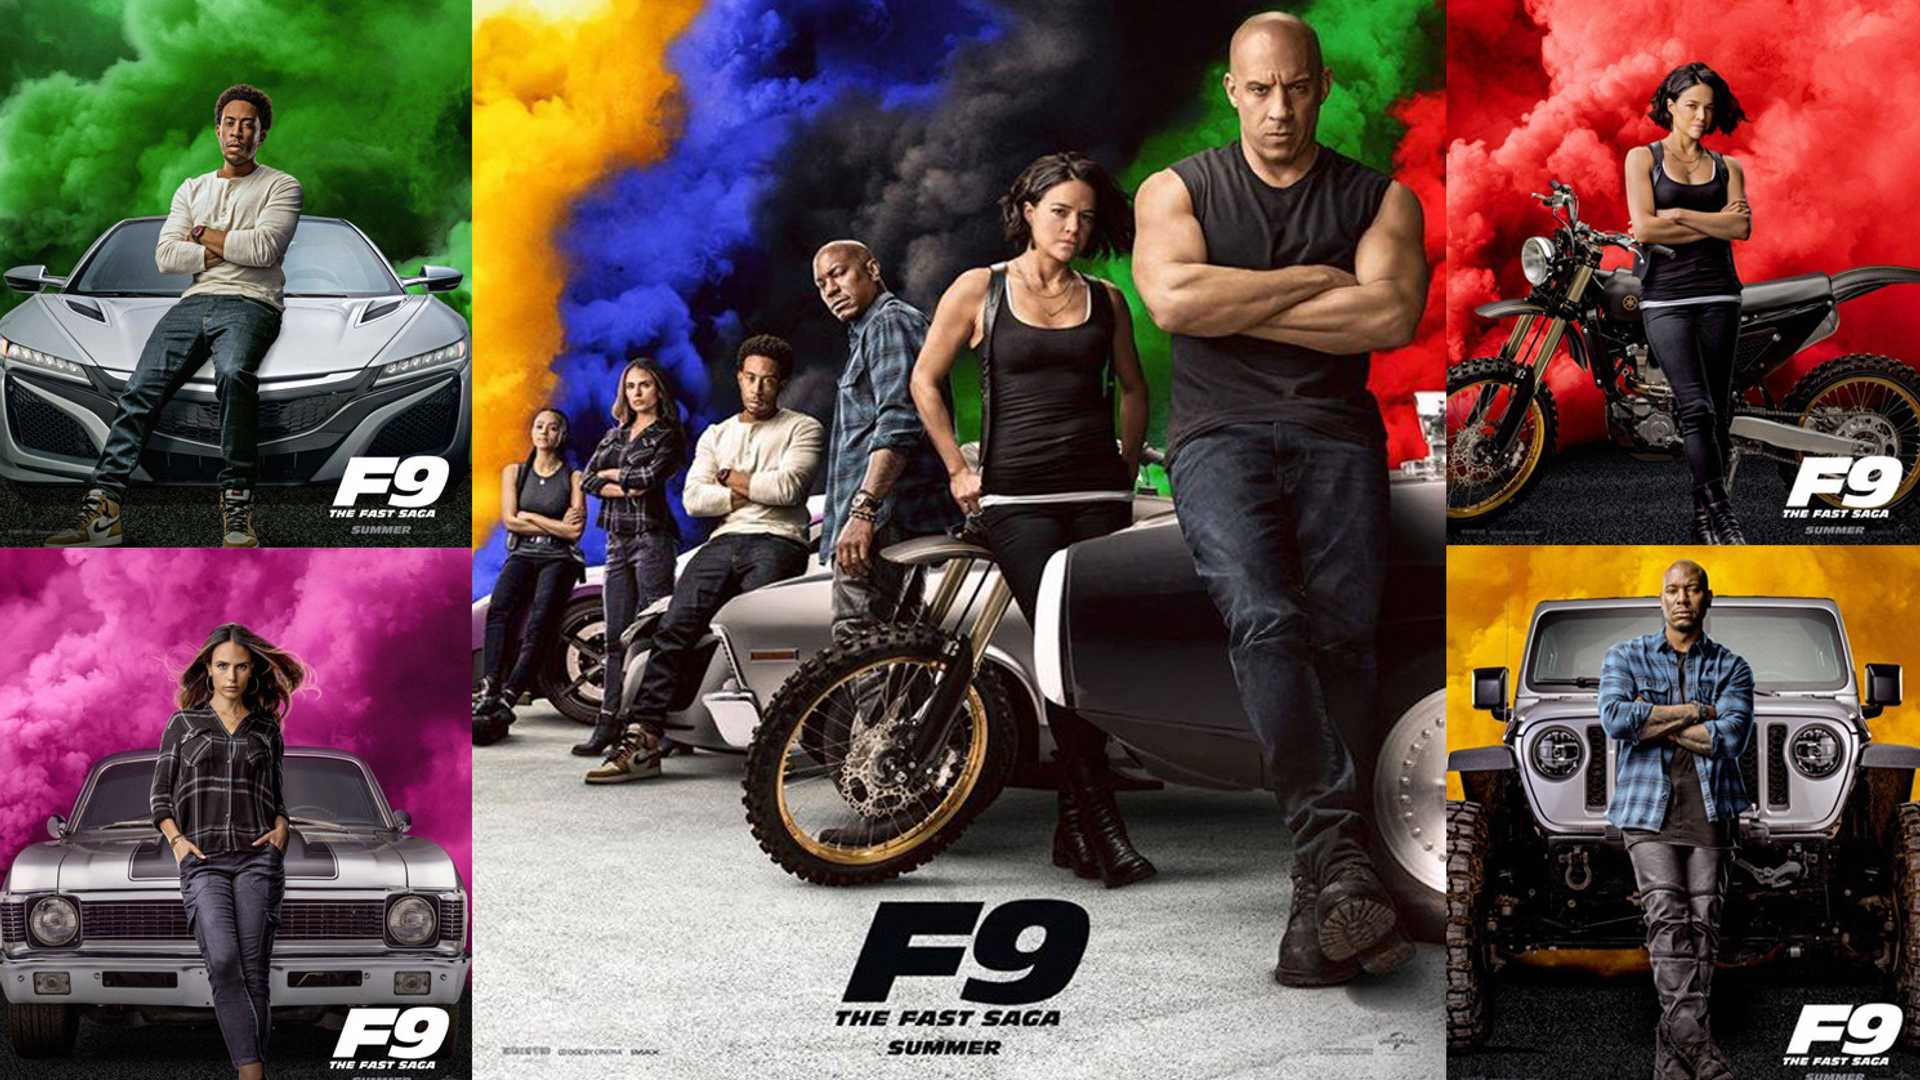 Fast and Furious 9: Michelle Rodriguez talks about rumors that the film will go into space